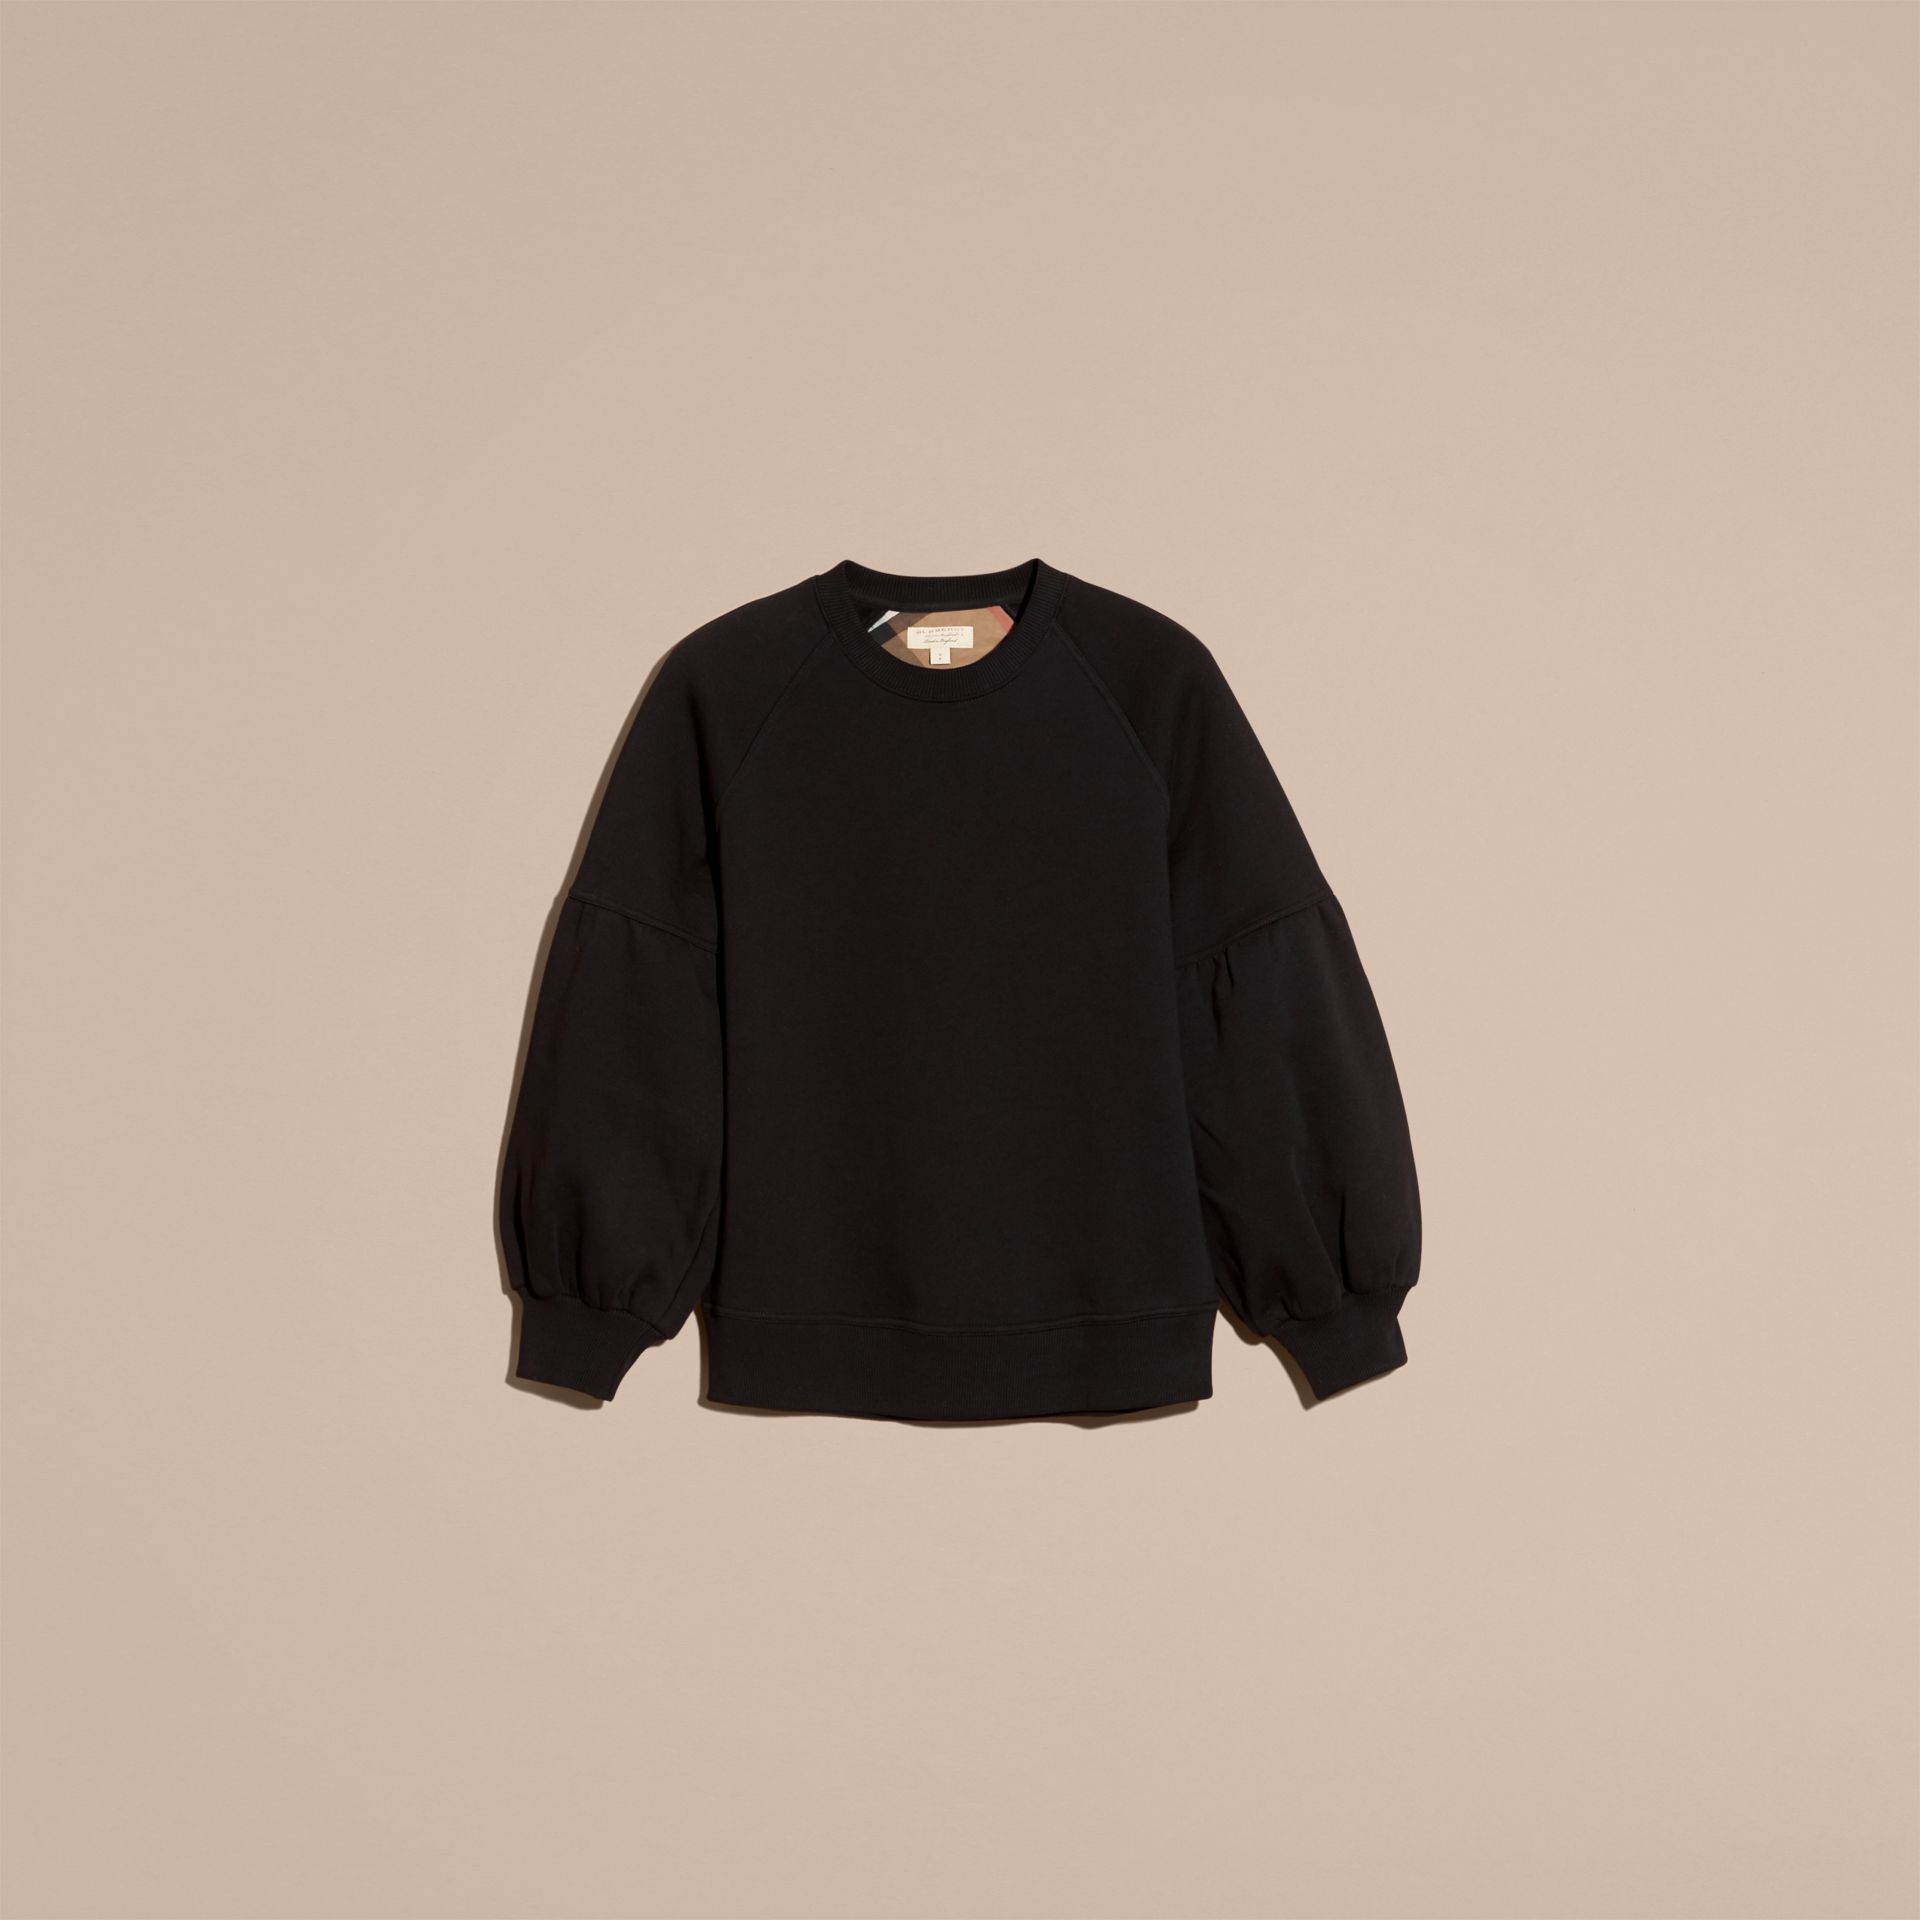 Brushed-back Jersey Sweatshirt with Bell Sleeves Black - gallery image 4